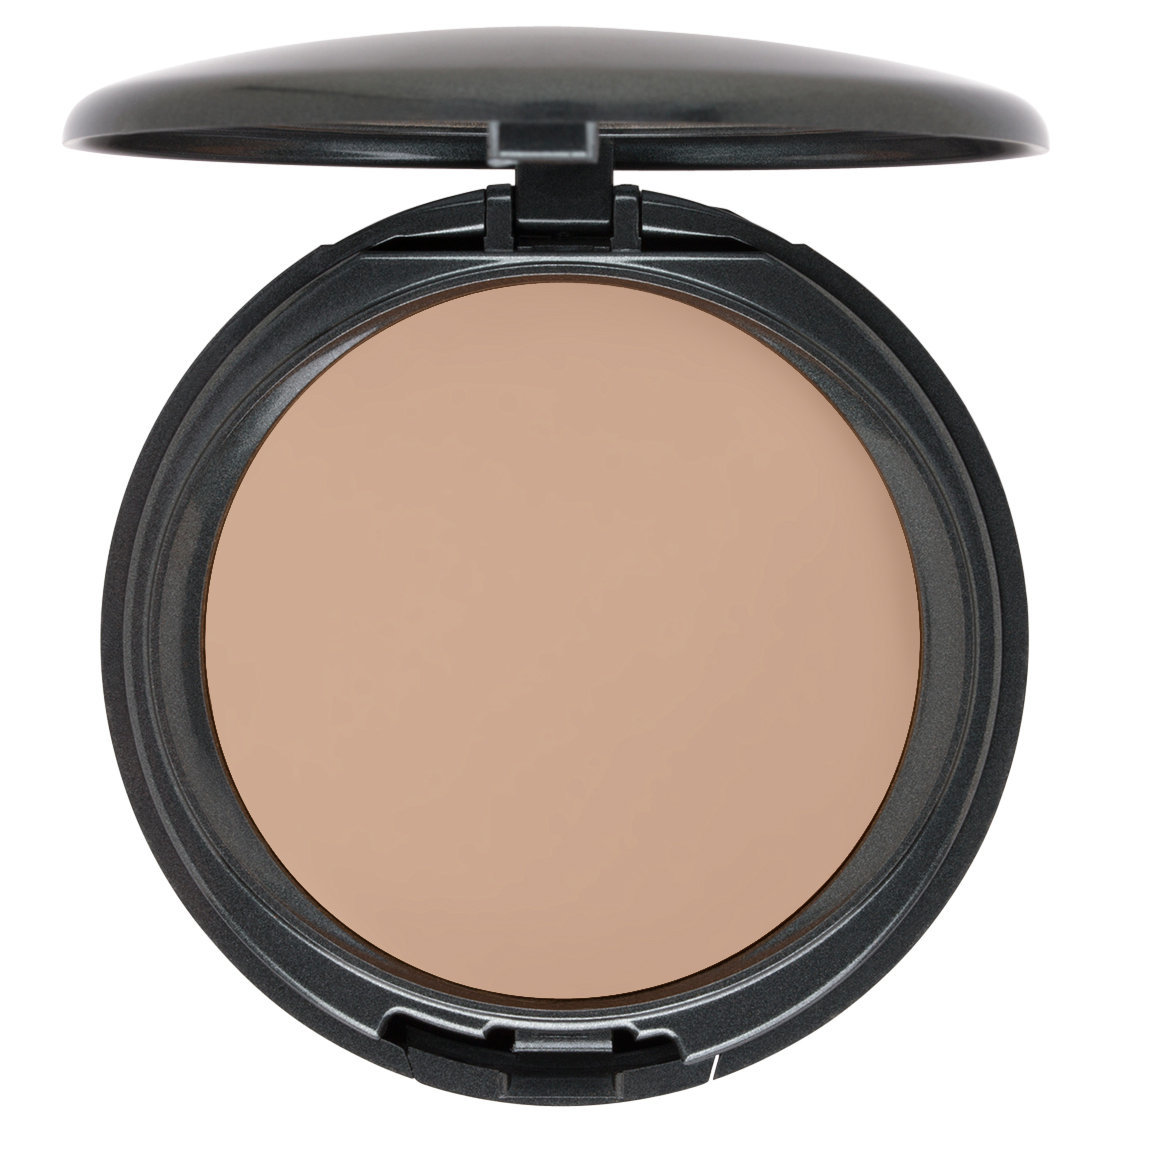 COVER | FX Total Cover Cream Foundation N10 alternative view 1.